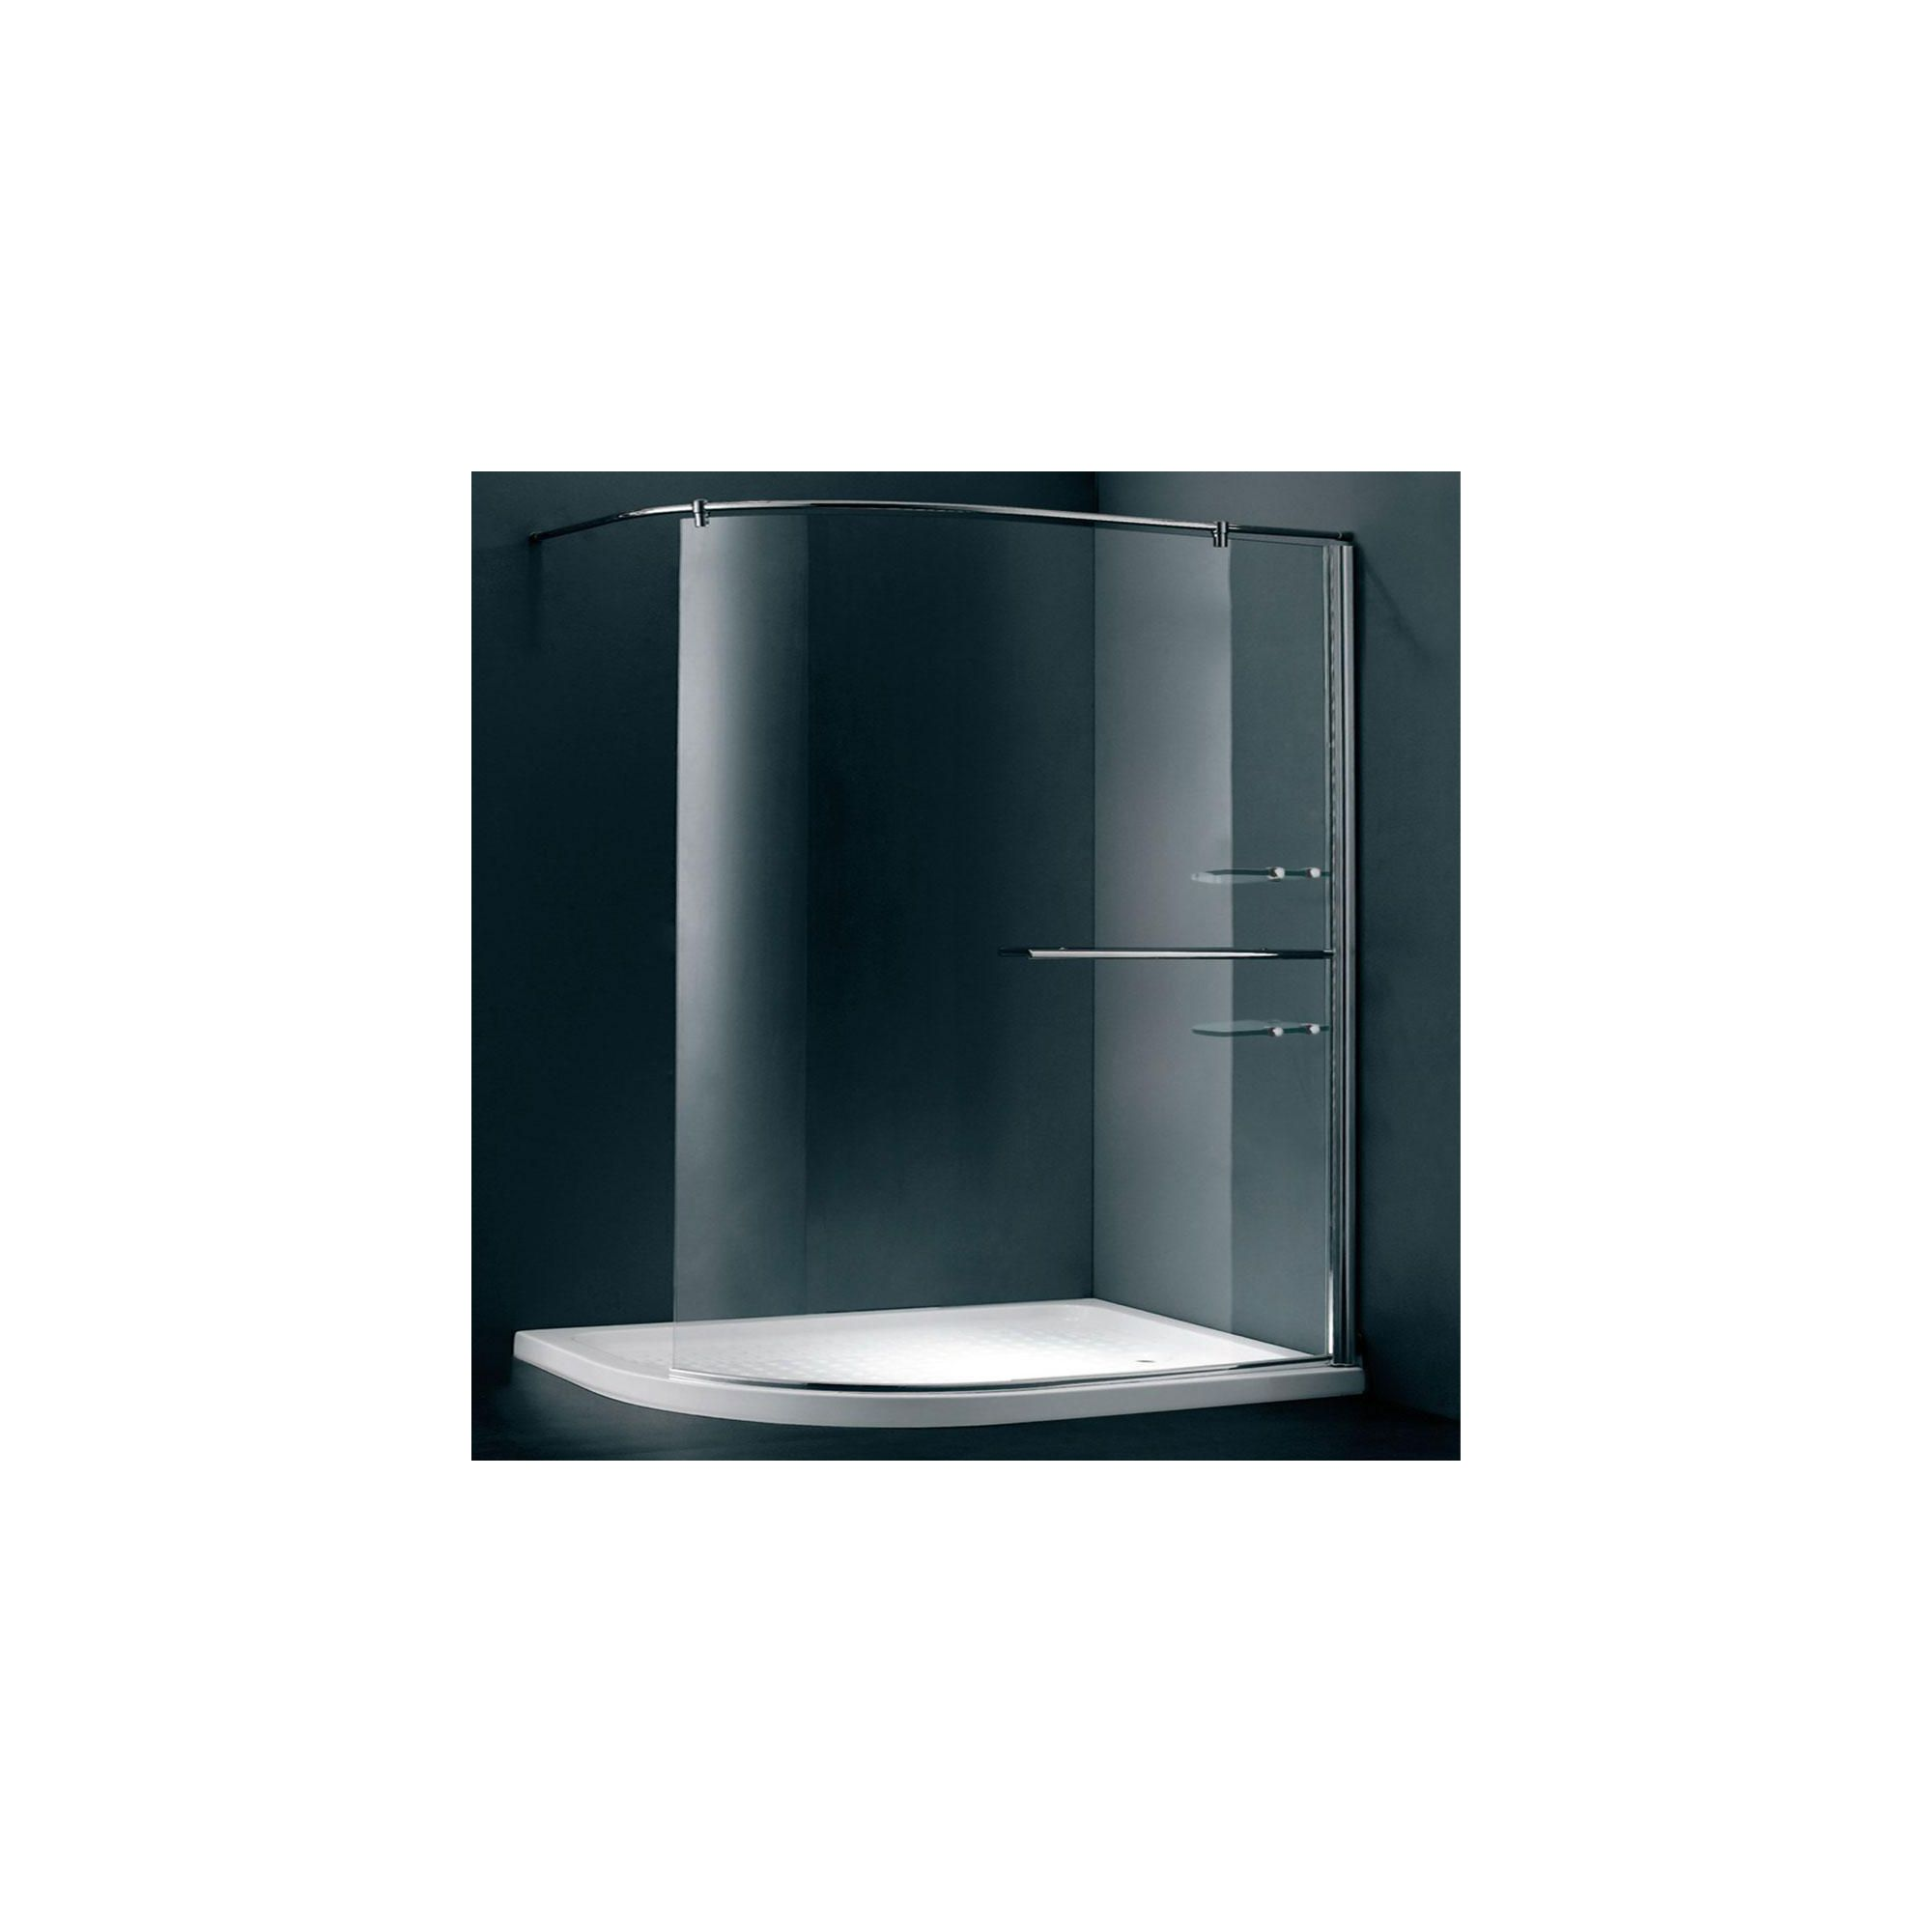 Duchy Style Curved Walk-In Wet Room Glass Shower Enclosure, 1200mm x 900mm, 6mm Glass, Low Profile Tray, Left Handed at Tesco Direct